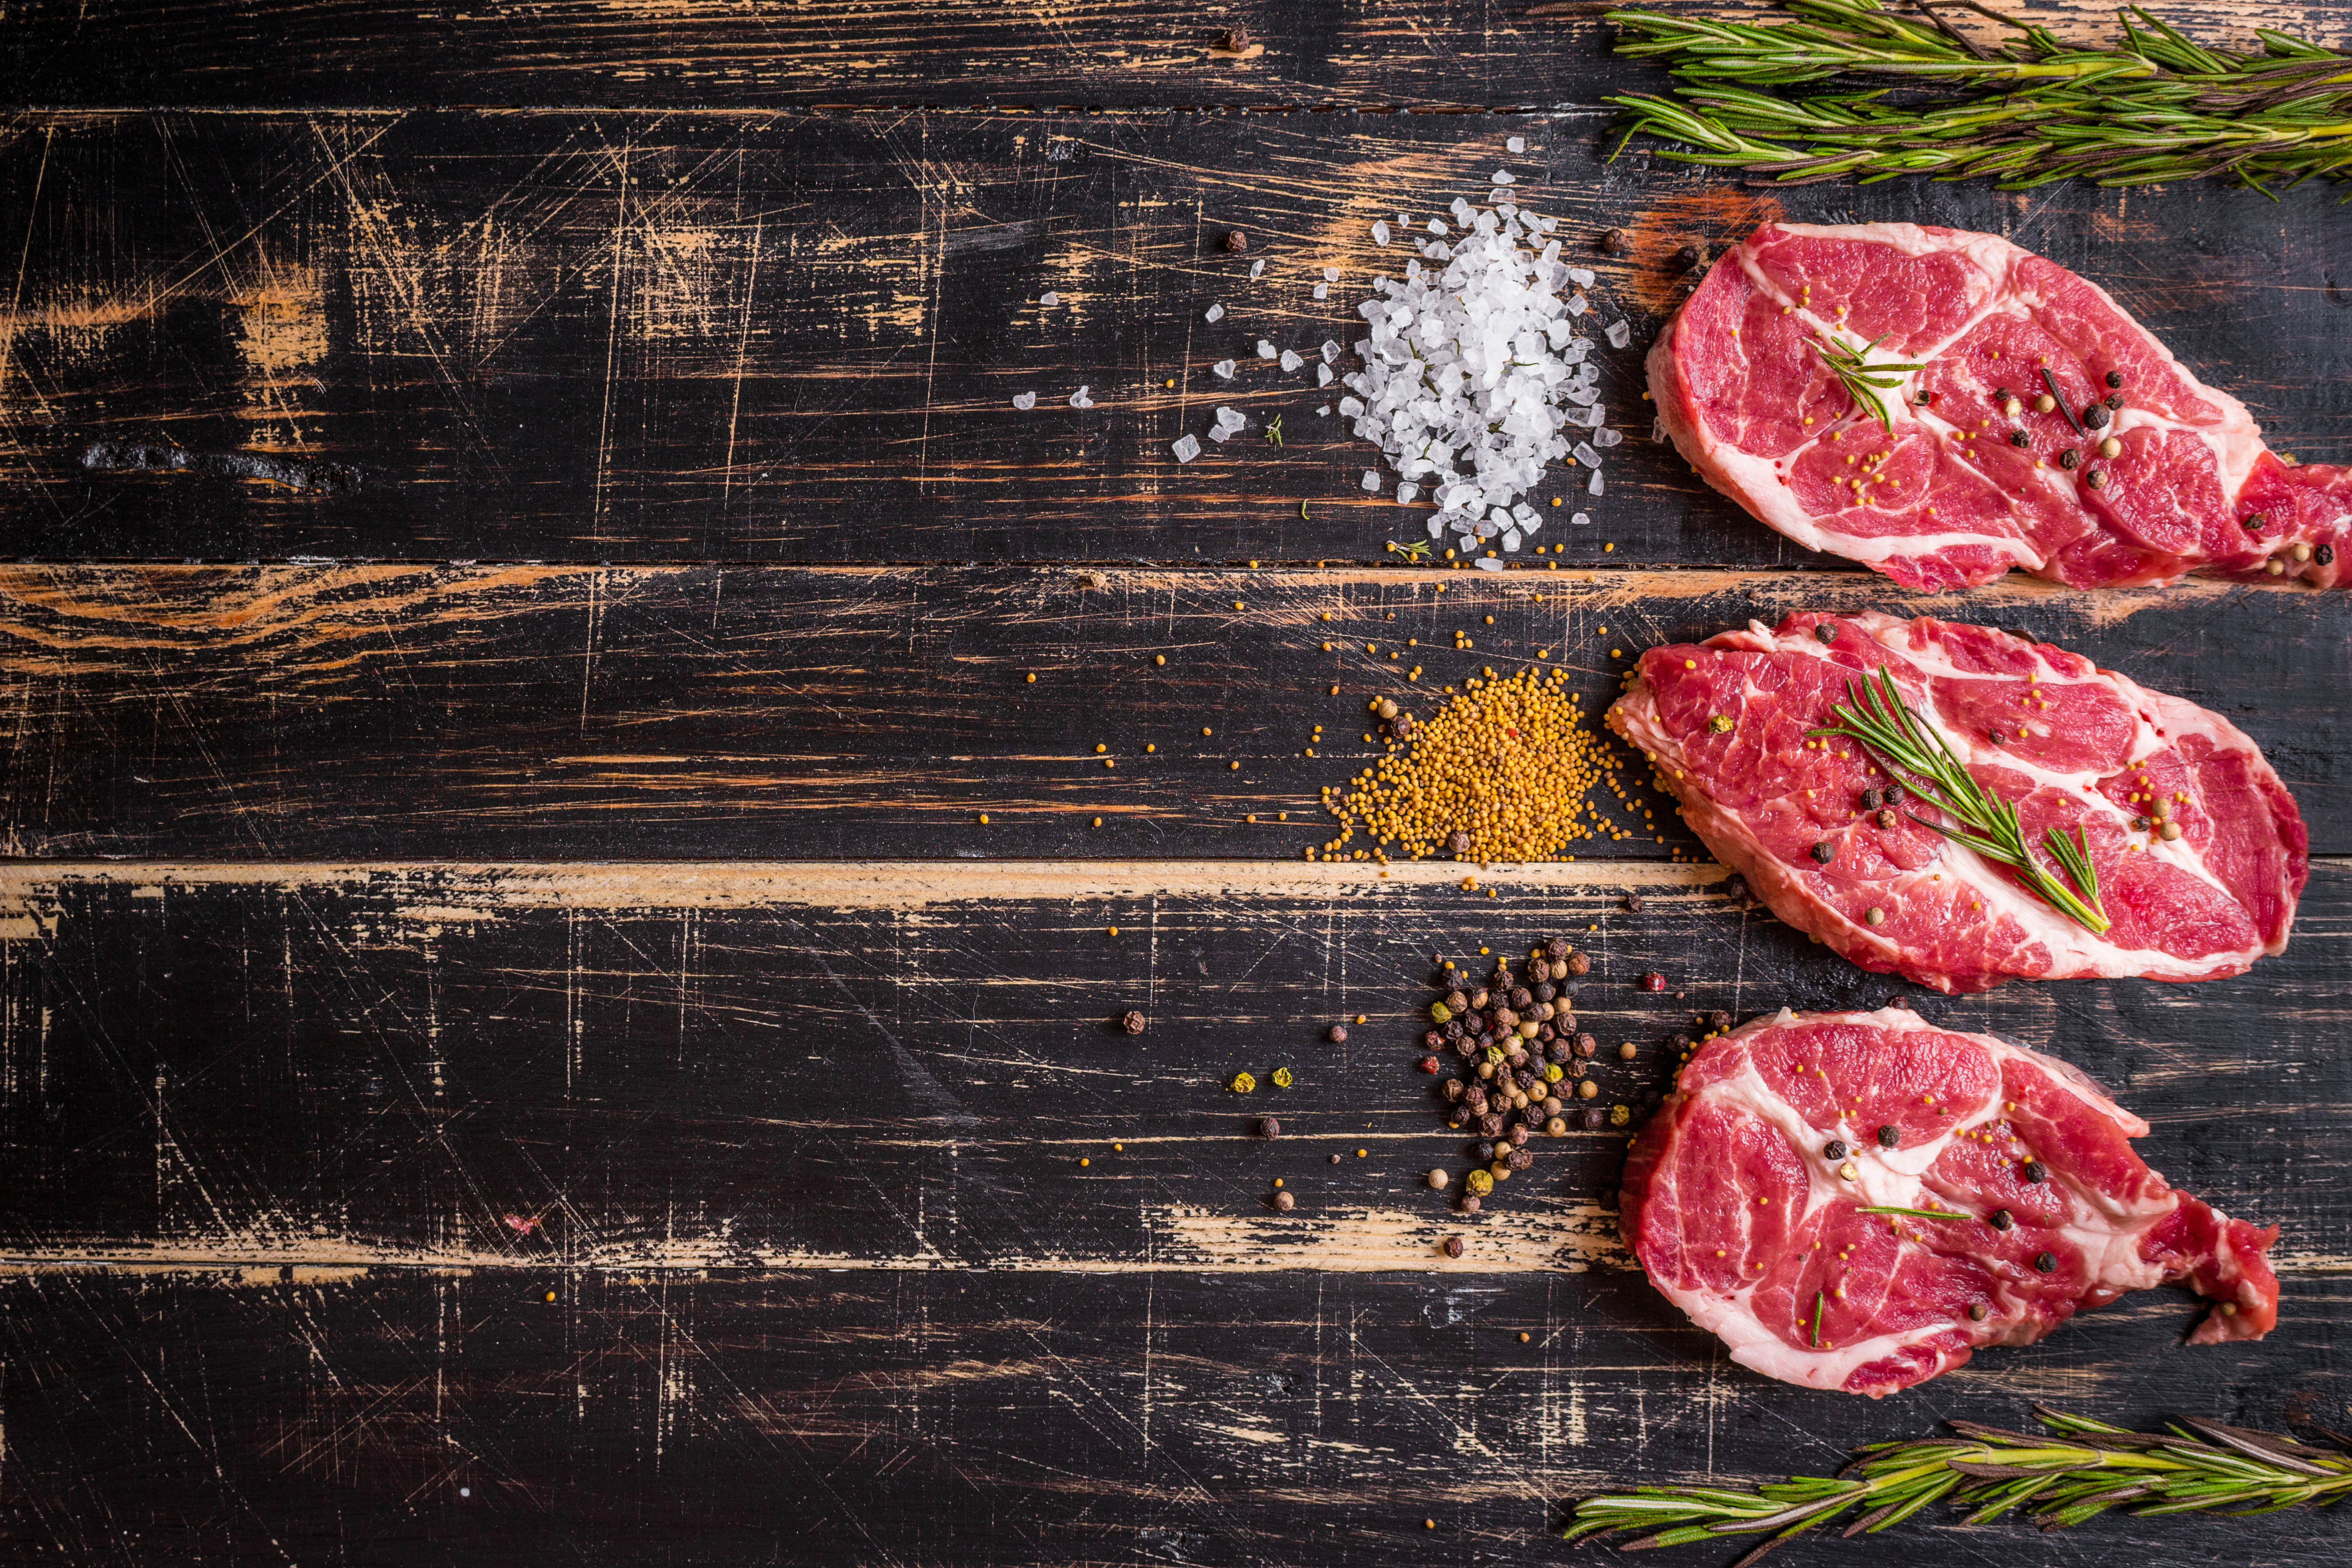 Is lab-grown meat actually worse for the environment?